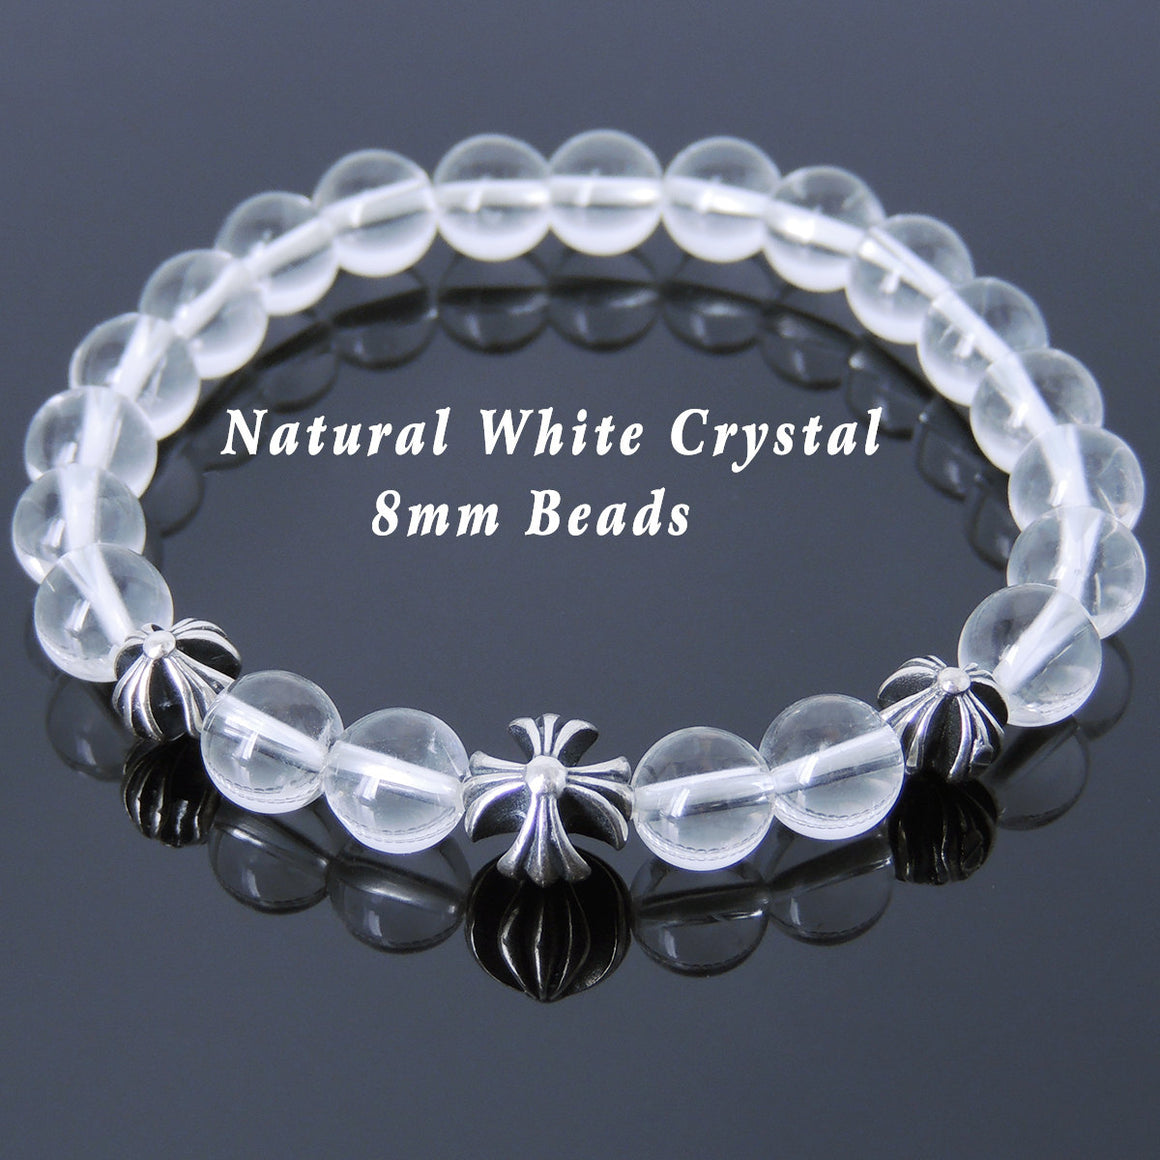 8mm White Crystal Quartz Healing Gemstone Bracelet with S925 Sterling Silver Holy Trinity Cross Beads - Handmade by Gem & Silver BR745